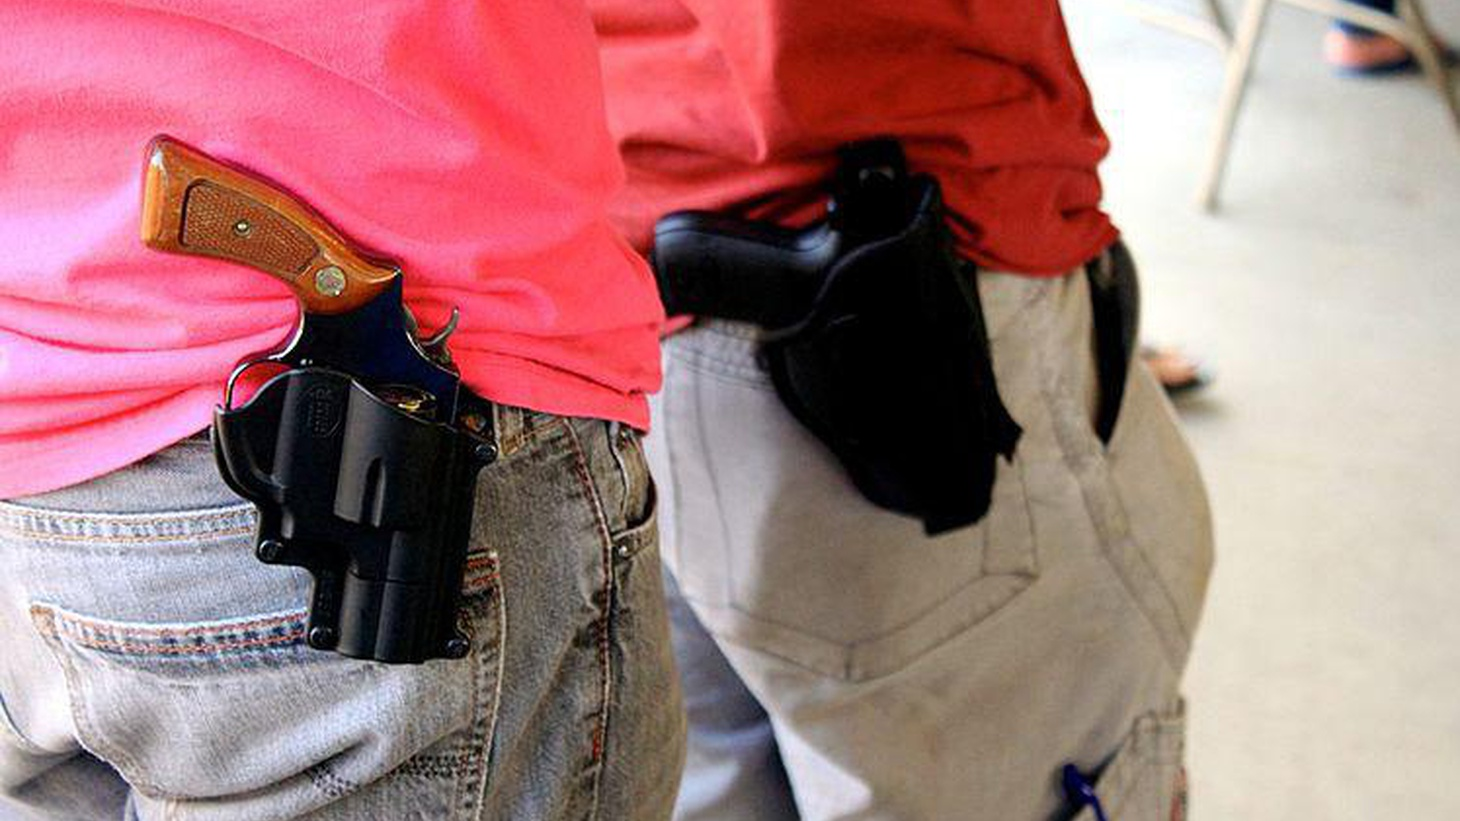 A federal appellate court says California's law against openly carrying guns in public has an unintended consequence. The case could be on its way to the Supreme Court.